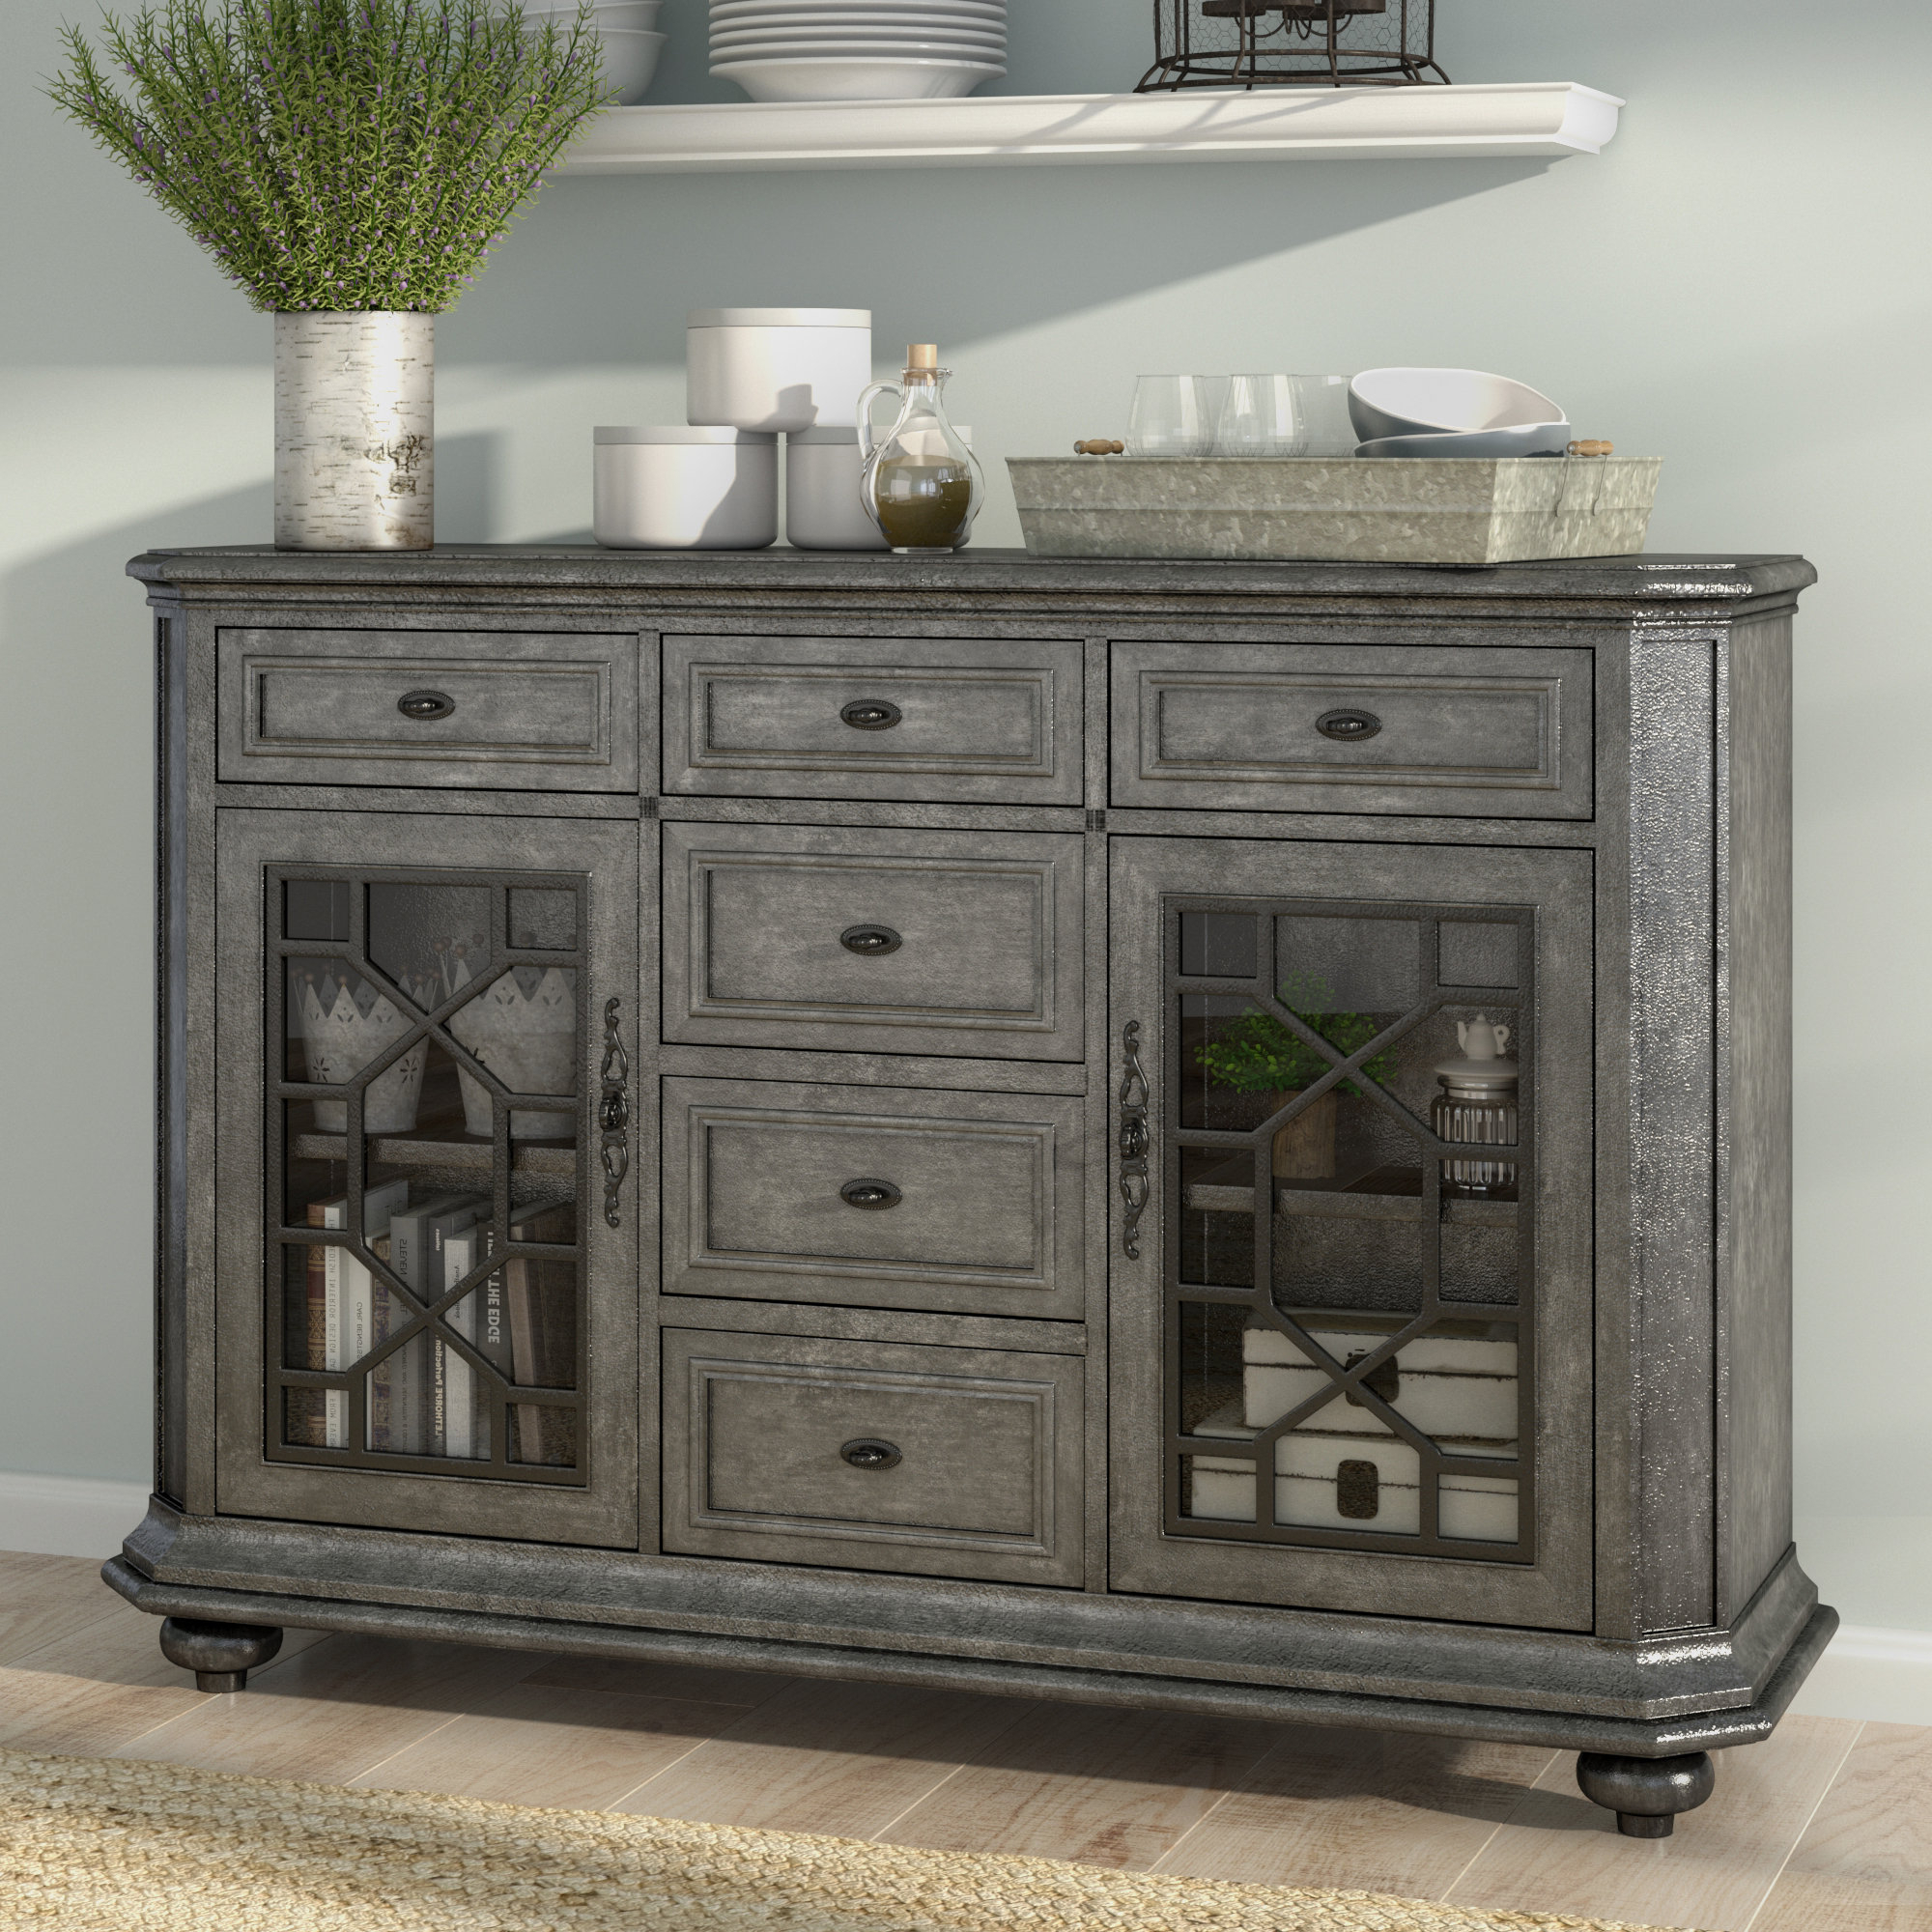 Fashionable Kratz Sideboard For Chicoree Charlena Sideboards (Gallery 3 of 20)